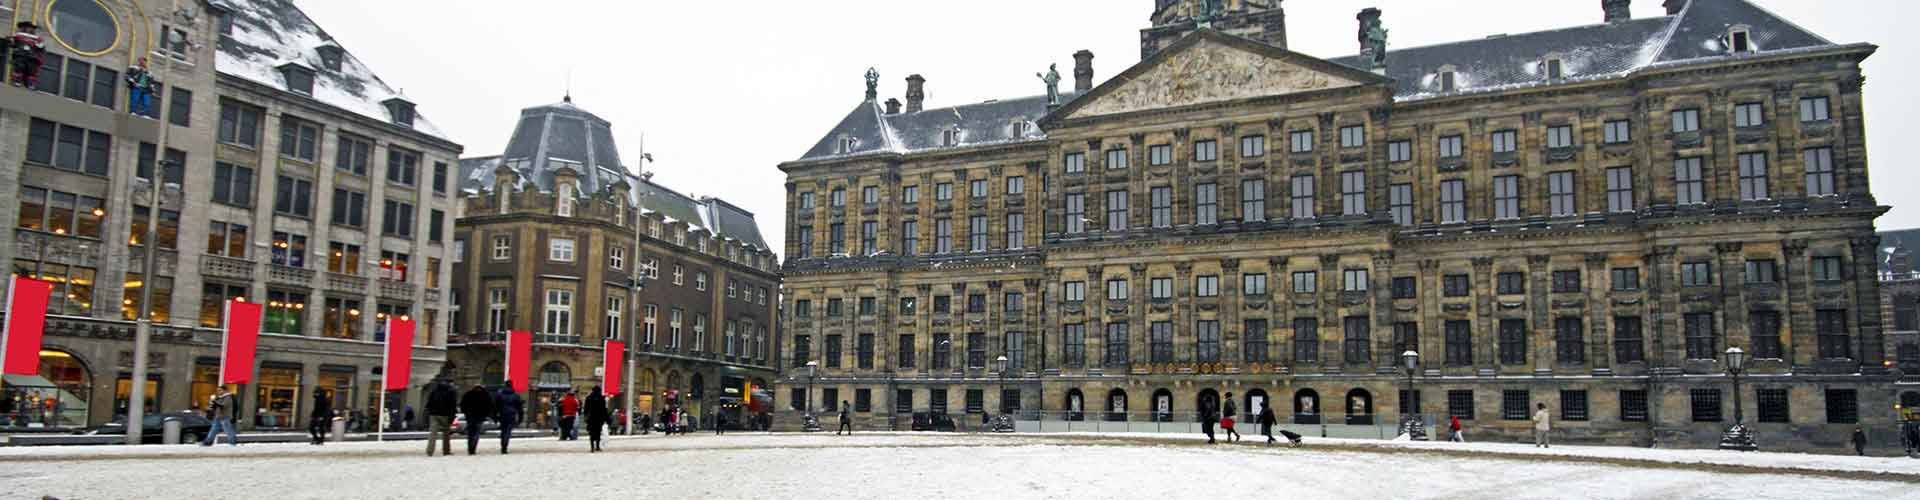 Amsterdam – Hostels close to Royal Palace. Maps for Amsterdam, Photos and Reviews for each hostel in Amsterdam.